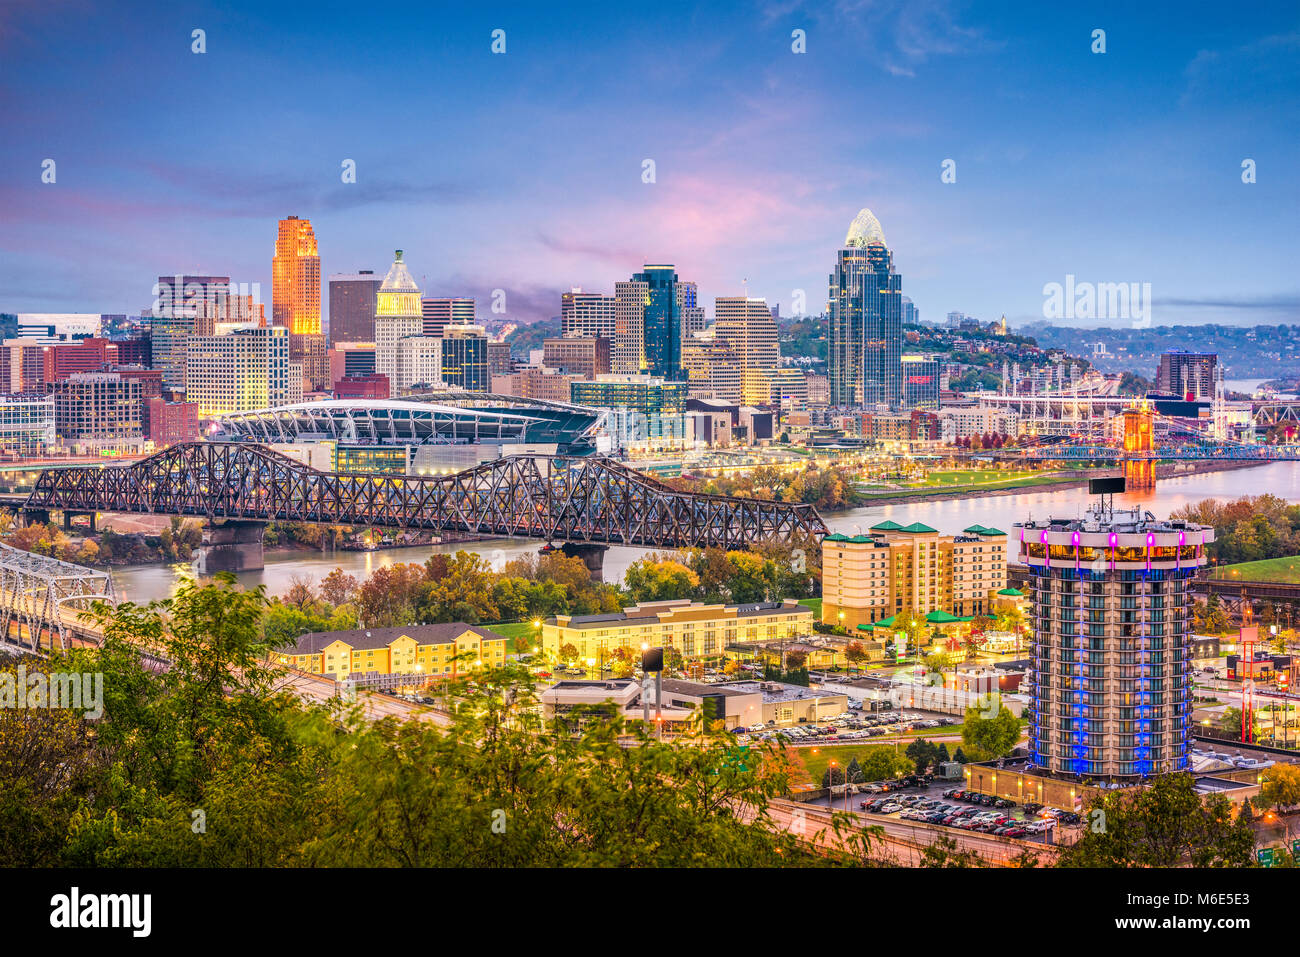 Cincinnati, Ohio, USA skyline at dusk. - Stock Image